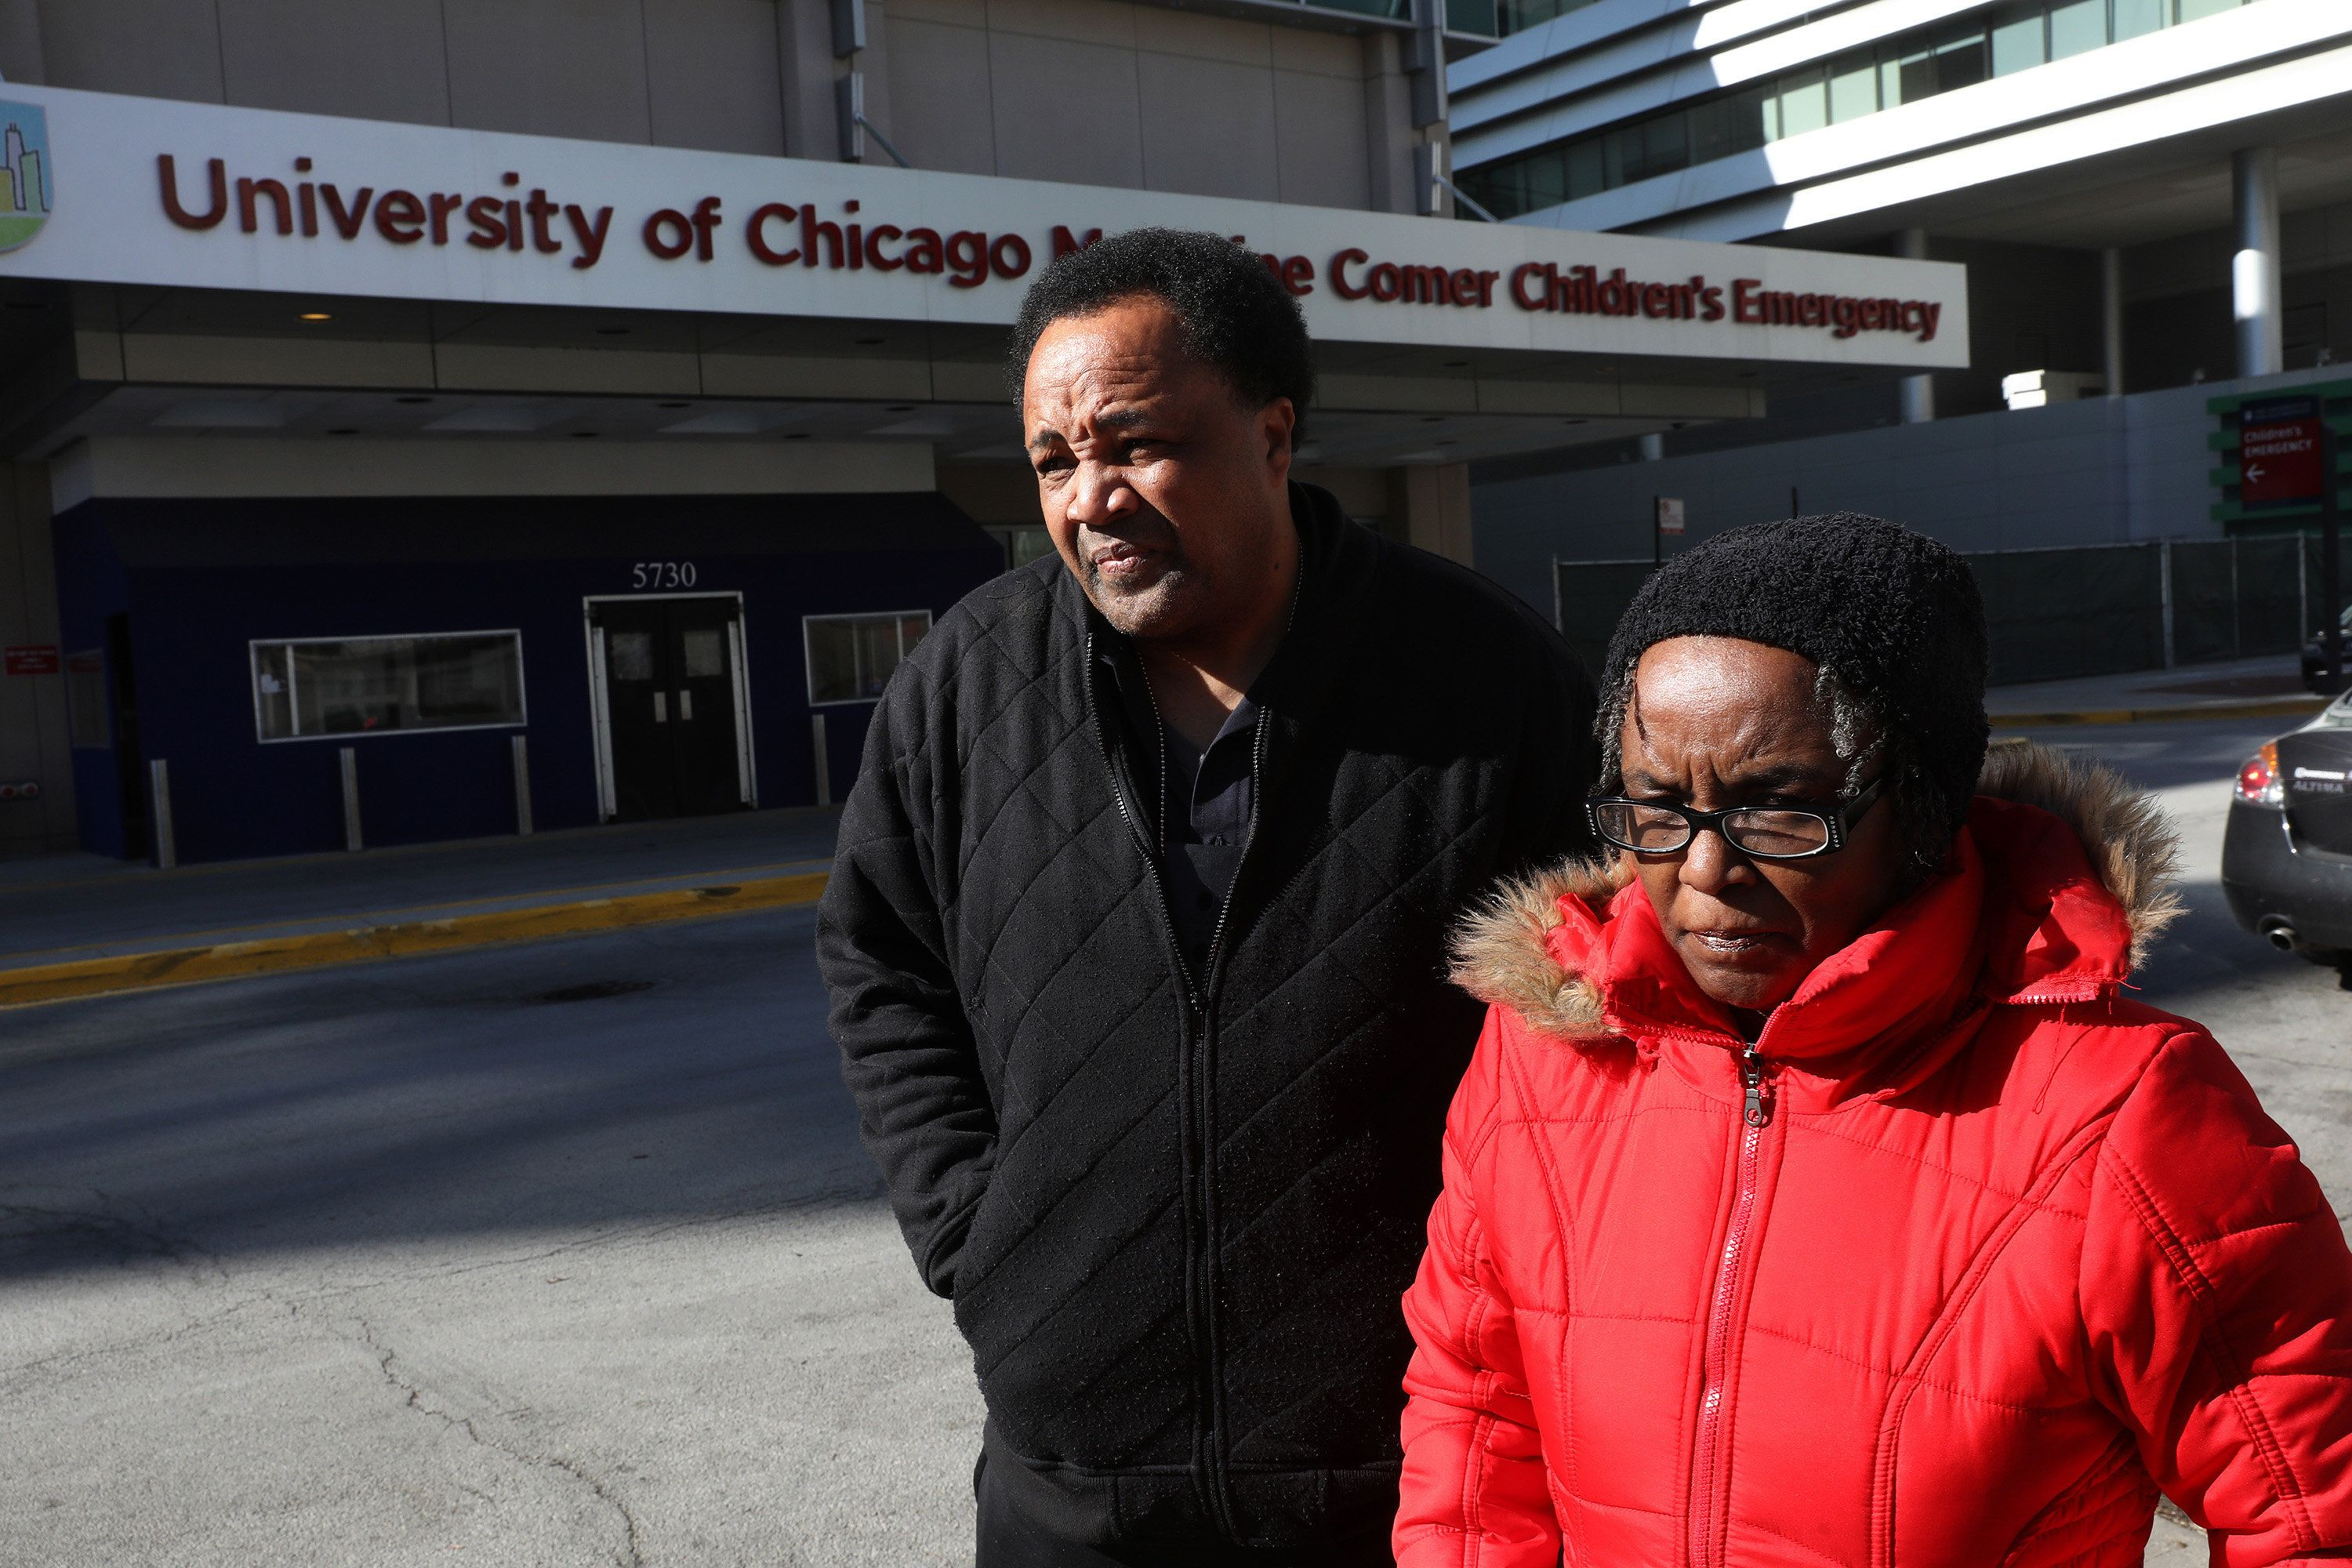 Andrew Holmes, Takiya's cousin, and Patsy Holmes, her grandmother, at University of Chicago Comers Children's Hospital on Feb